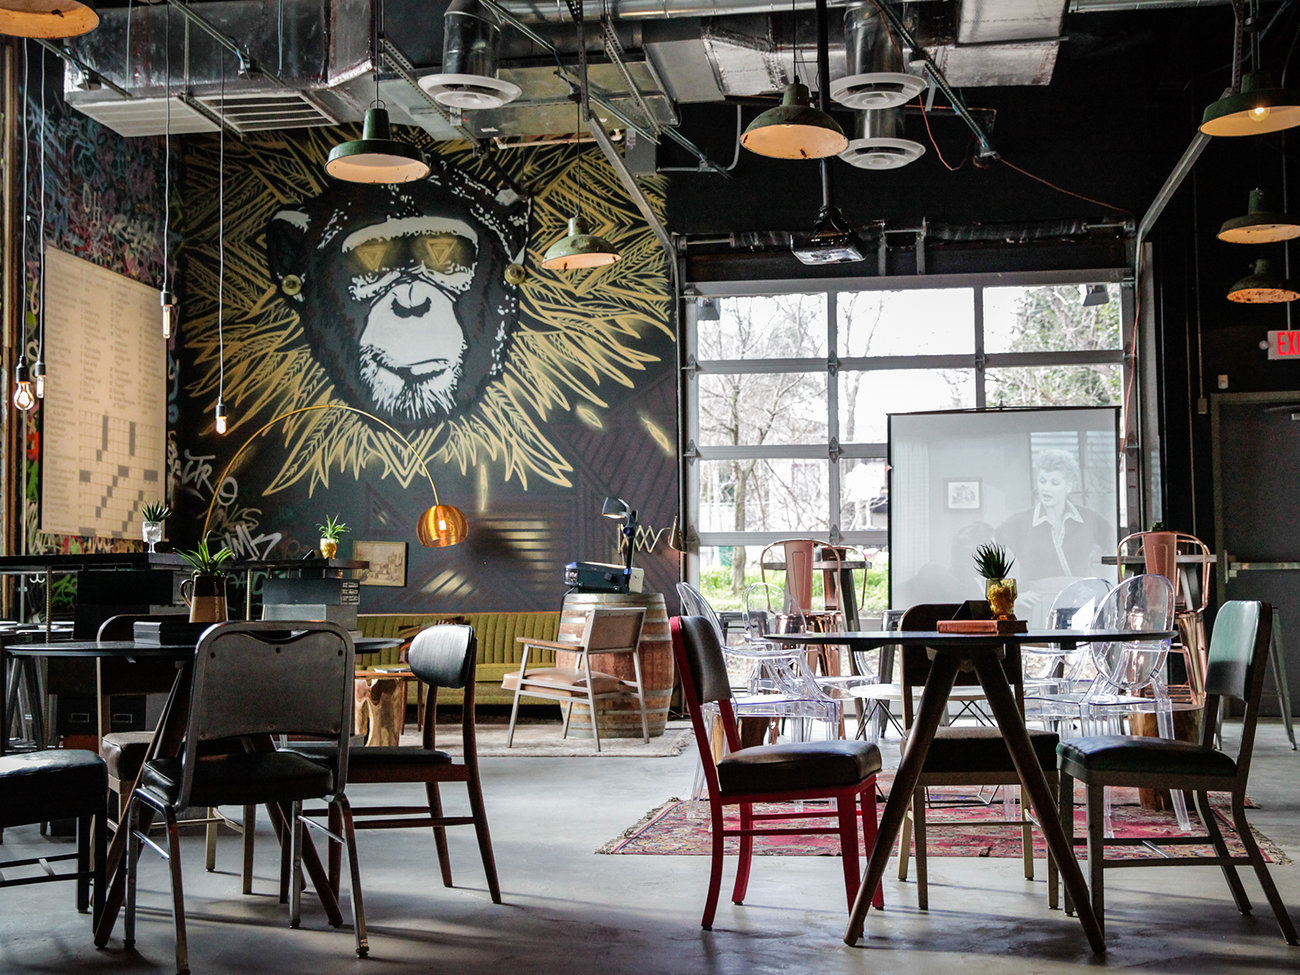 Infinite Monkey Theorem Bar in Denver